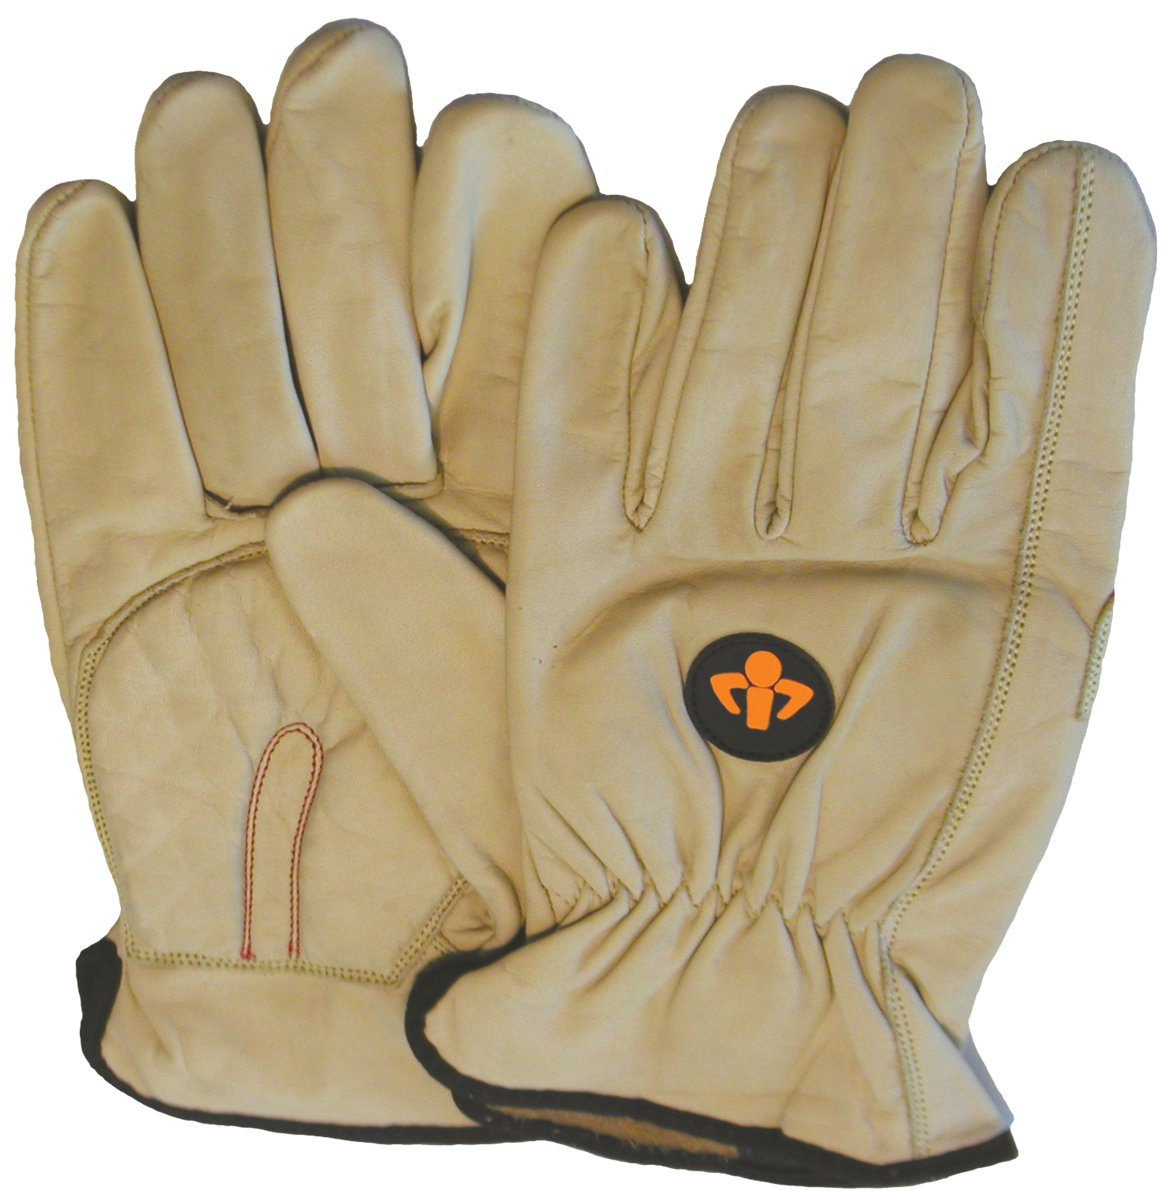 Anti-Vibration Gloves, Carpal Tunn, M, PR